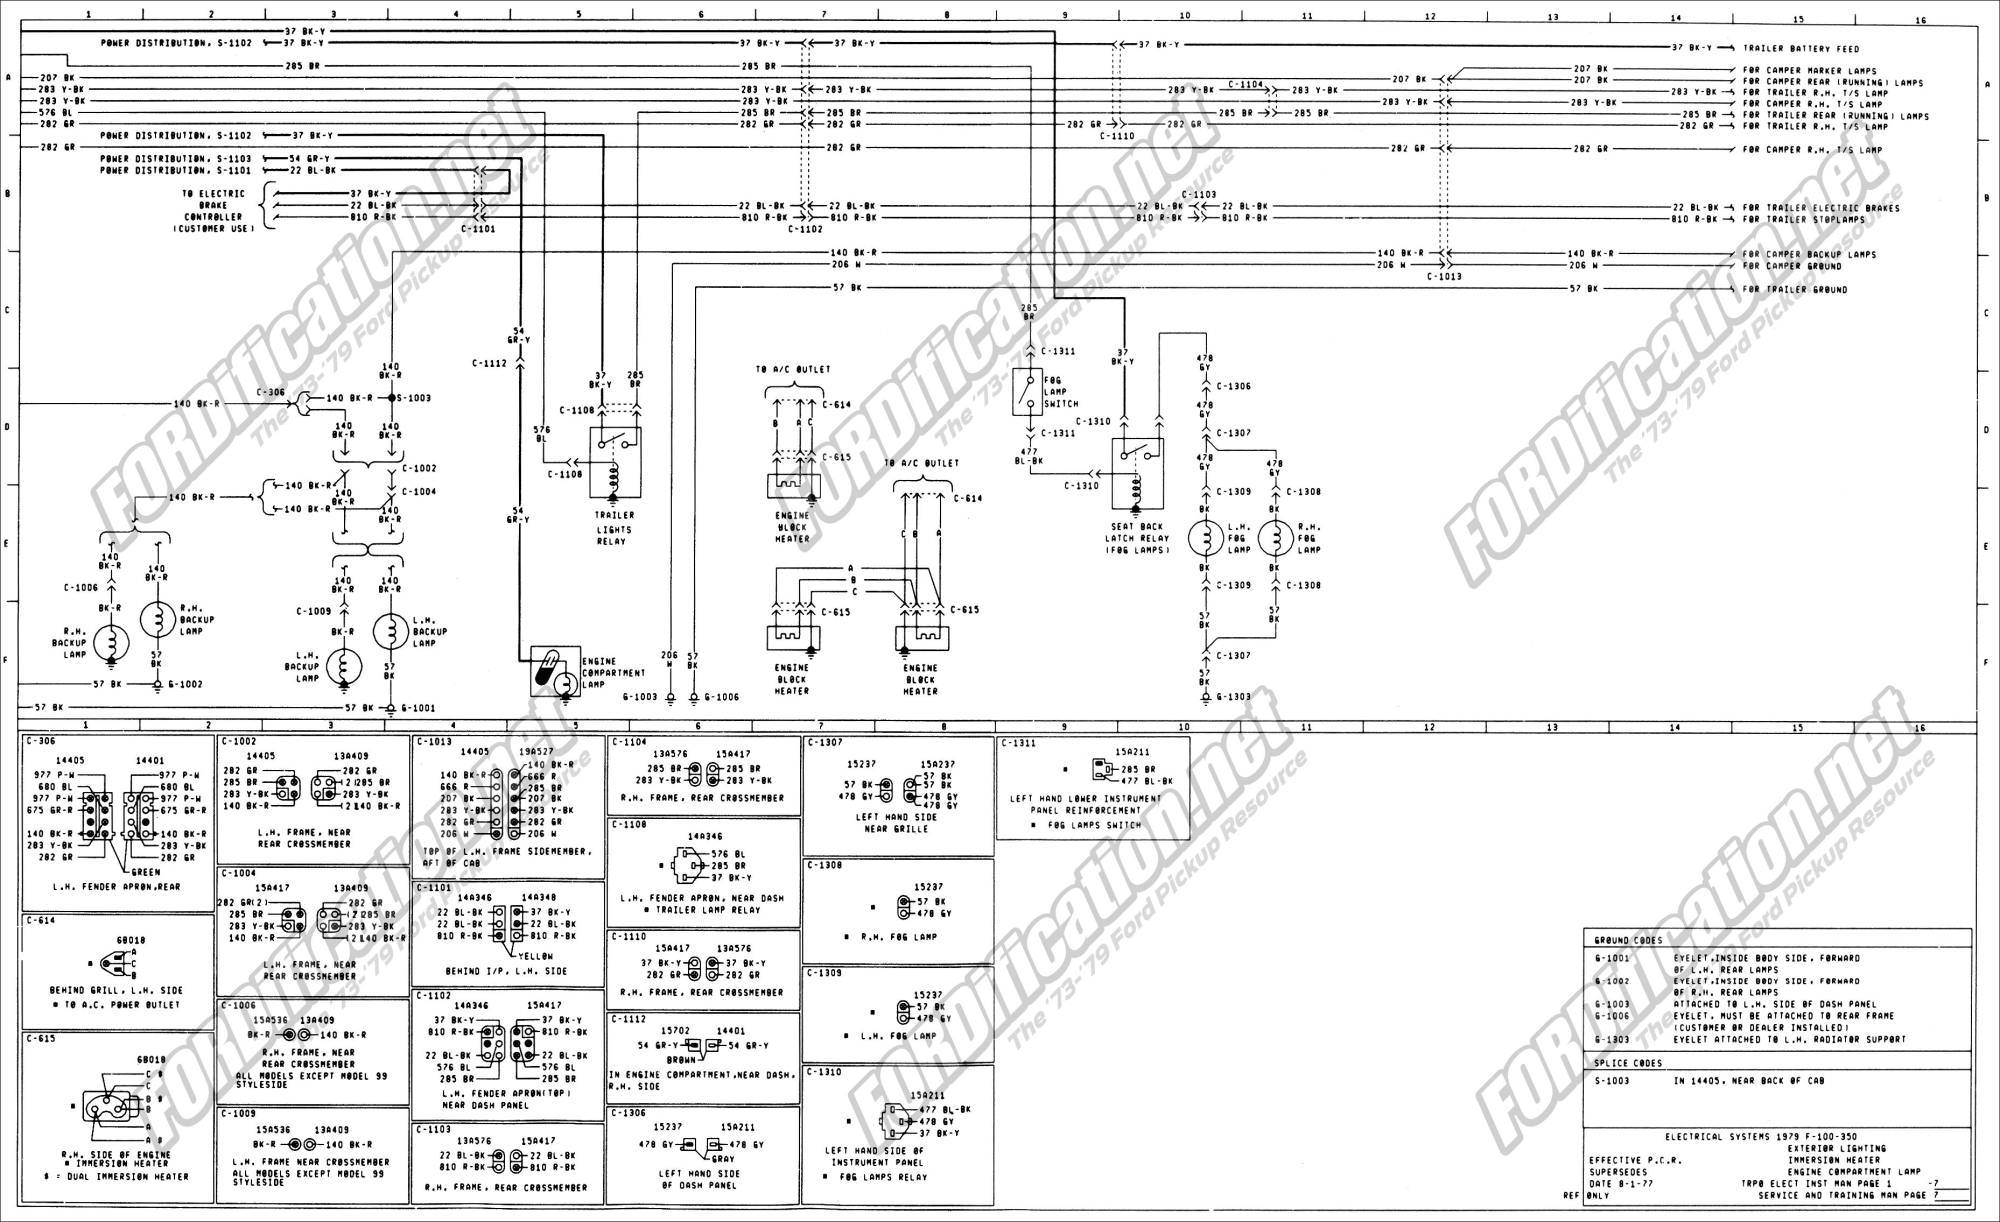 hight resolution of 1973 1979 ford truck wiring diagrams schematics fordification net 2003 ford econoline van fuse box diagram 1979 ford e150 wiring diagram